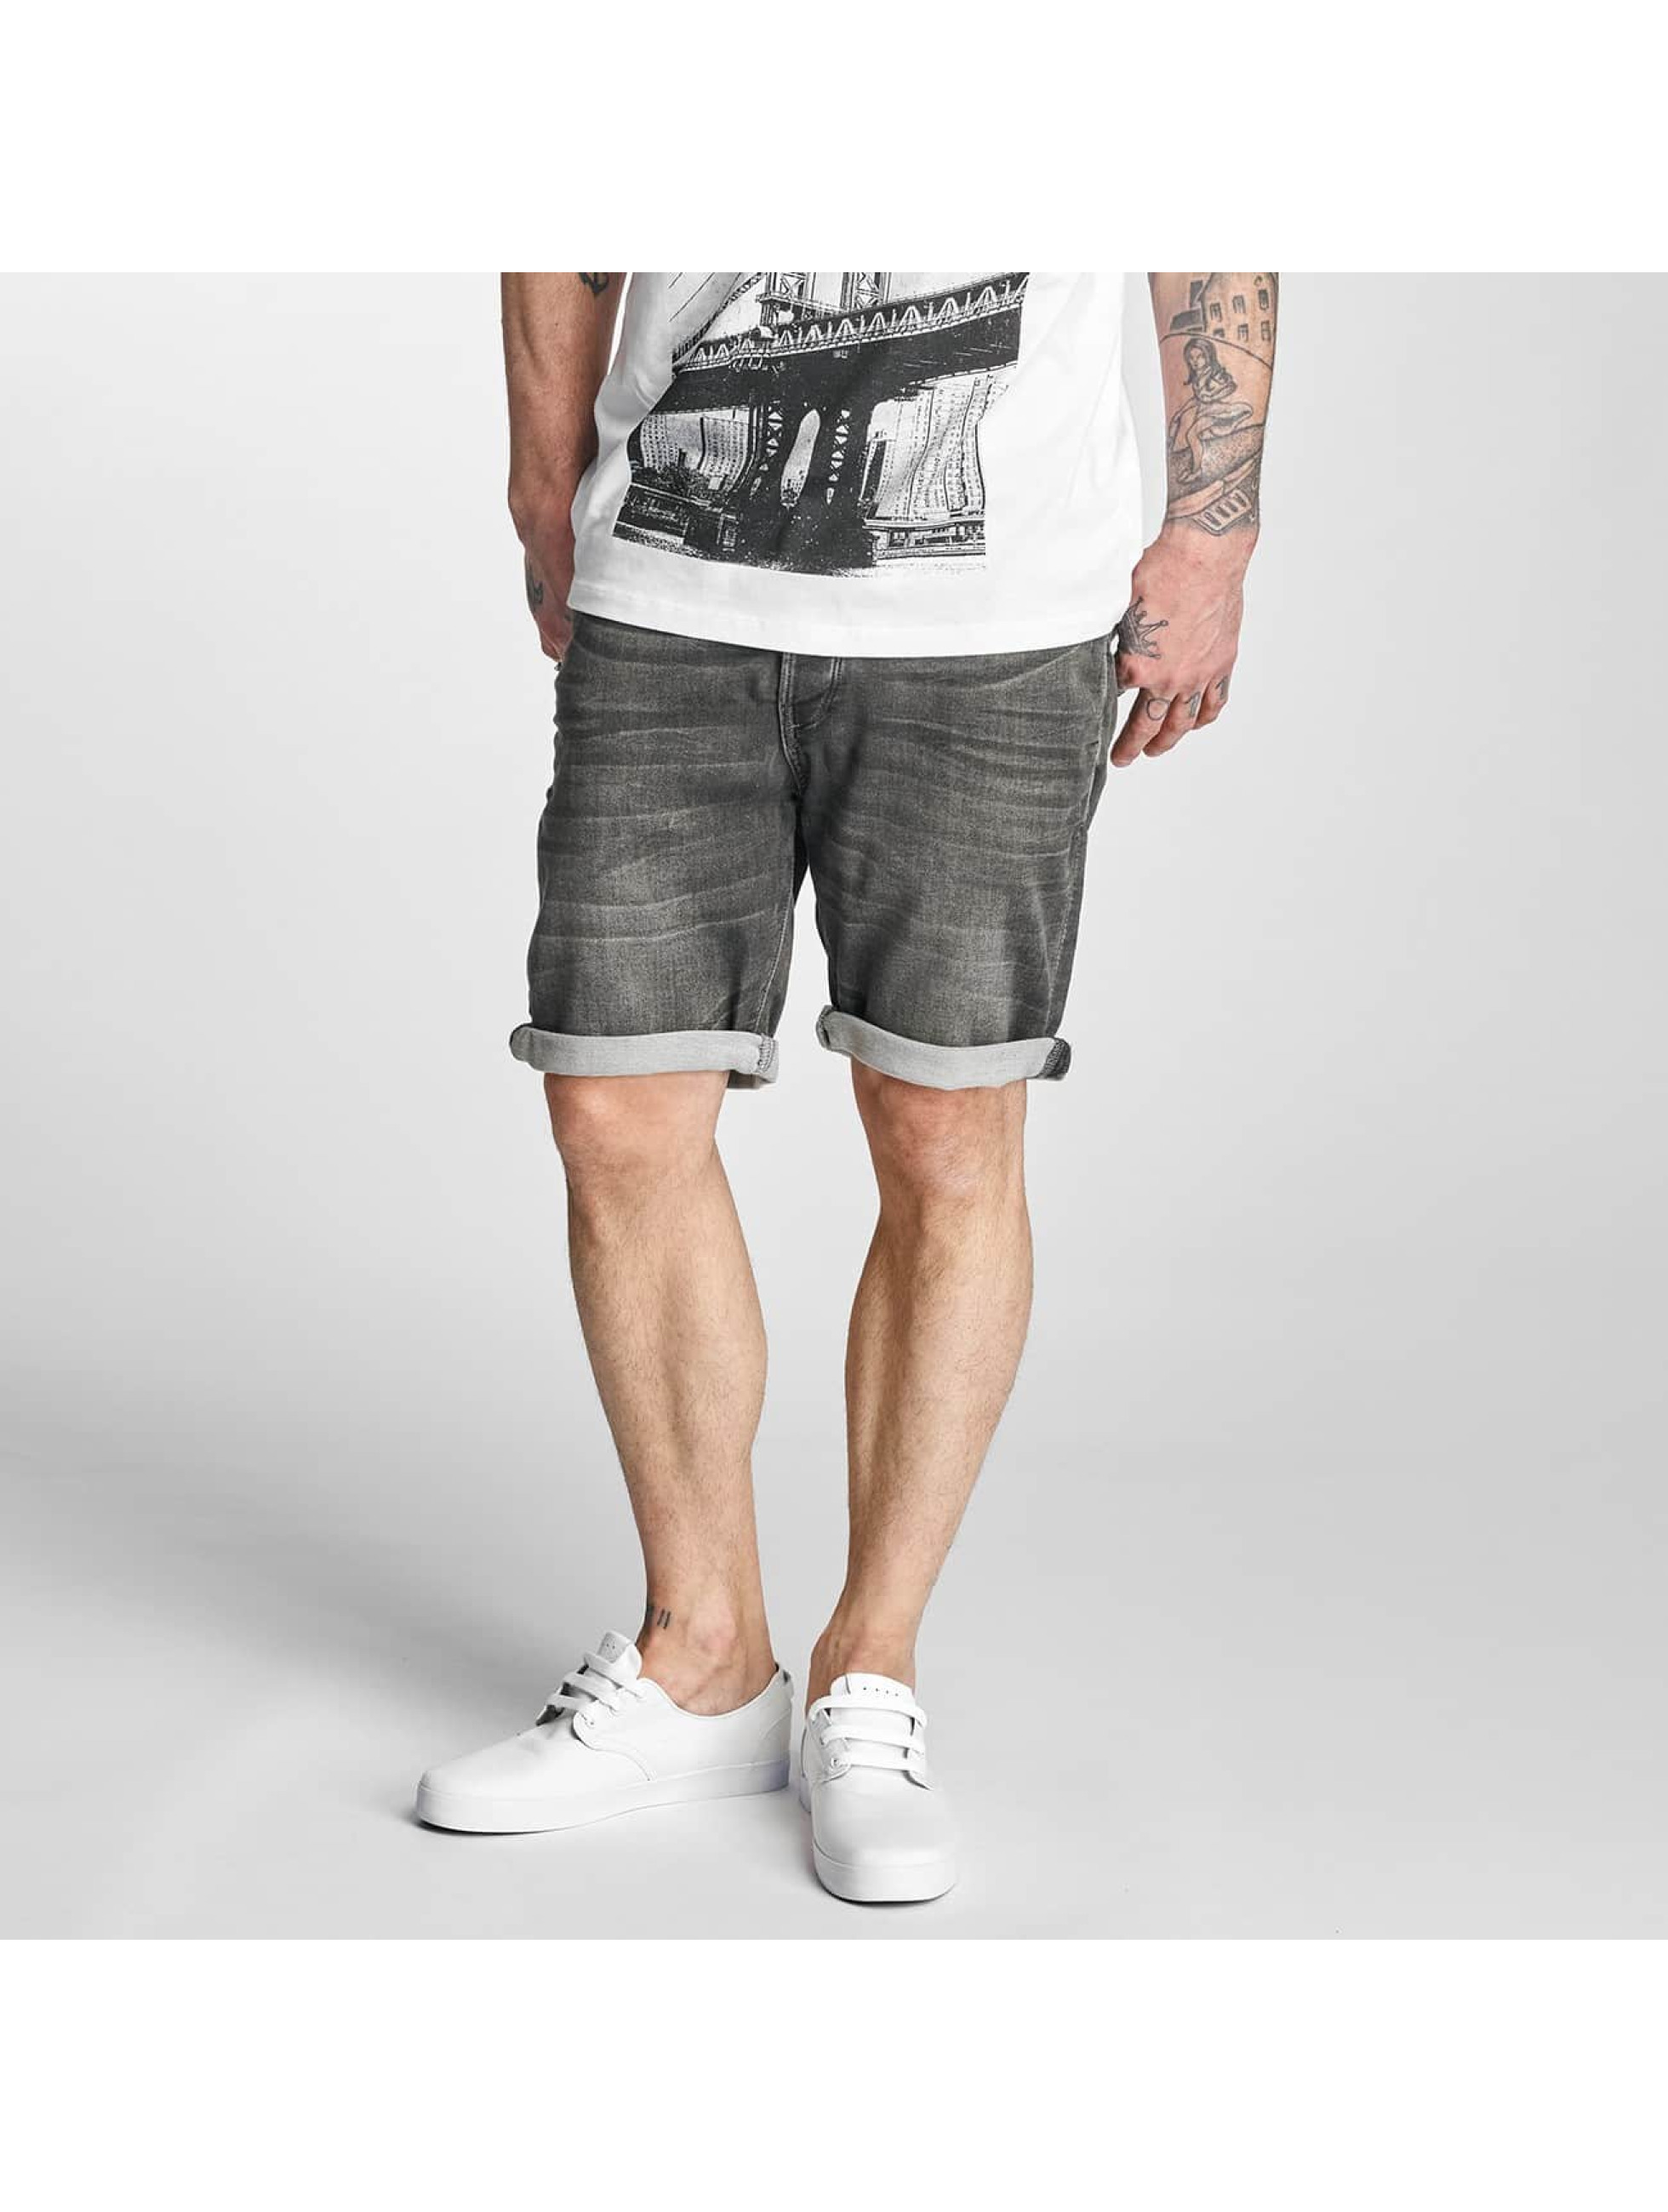 Solid Pantalon / Shorts Denim en gris